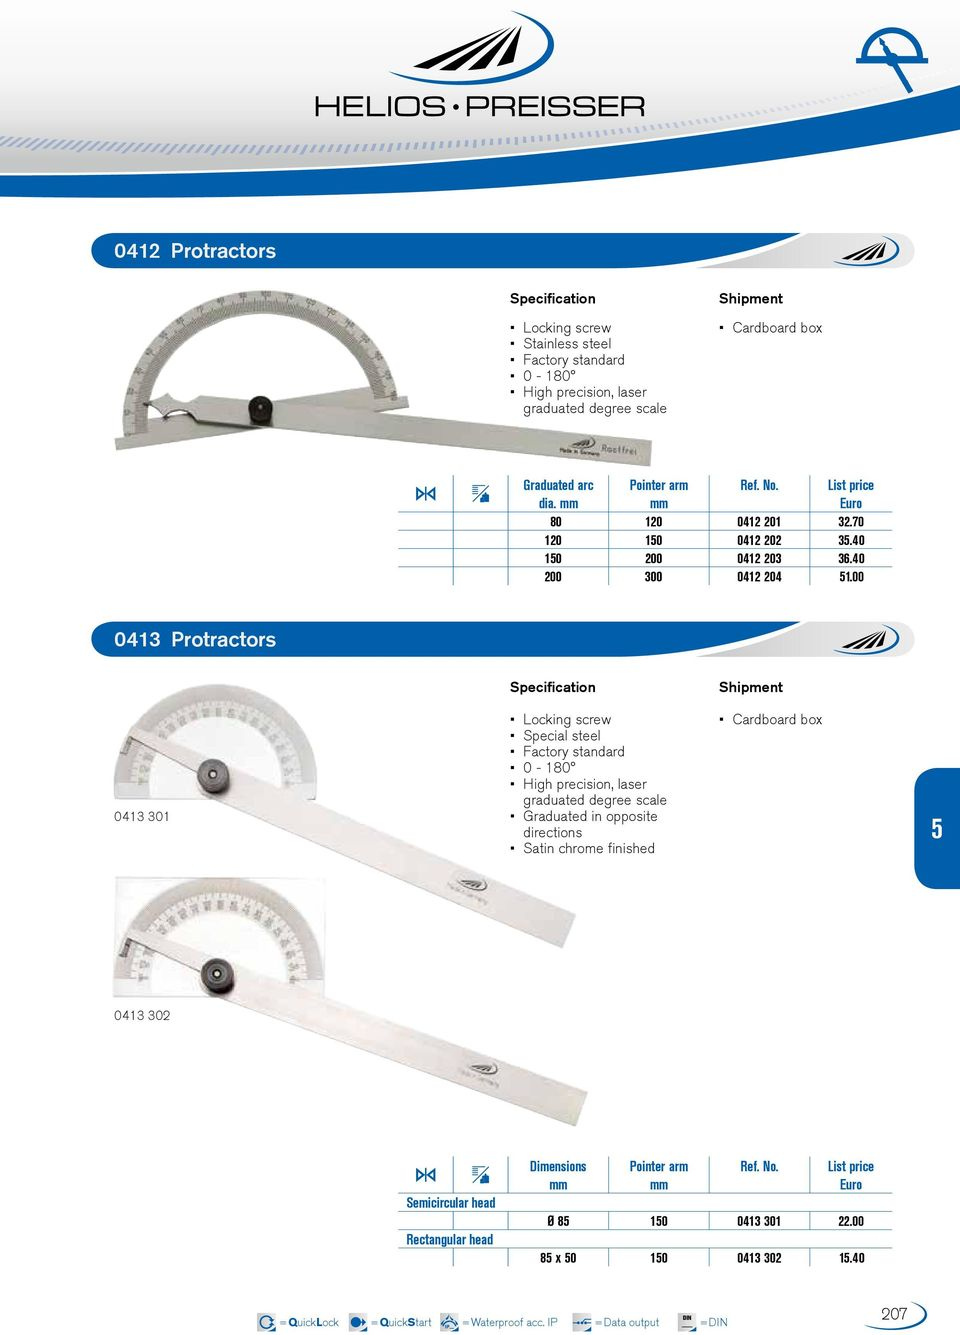 00 0413 Protractors 0413 301 Locking screw Special steel 0-180 High precision, laser graduated degree scale Graduated in opposite directions Satin